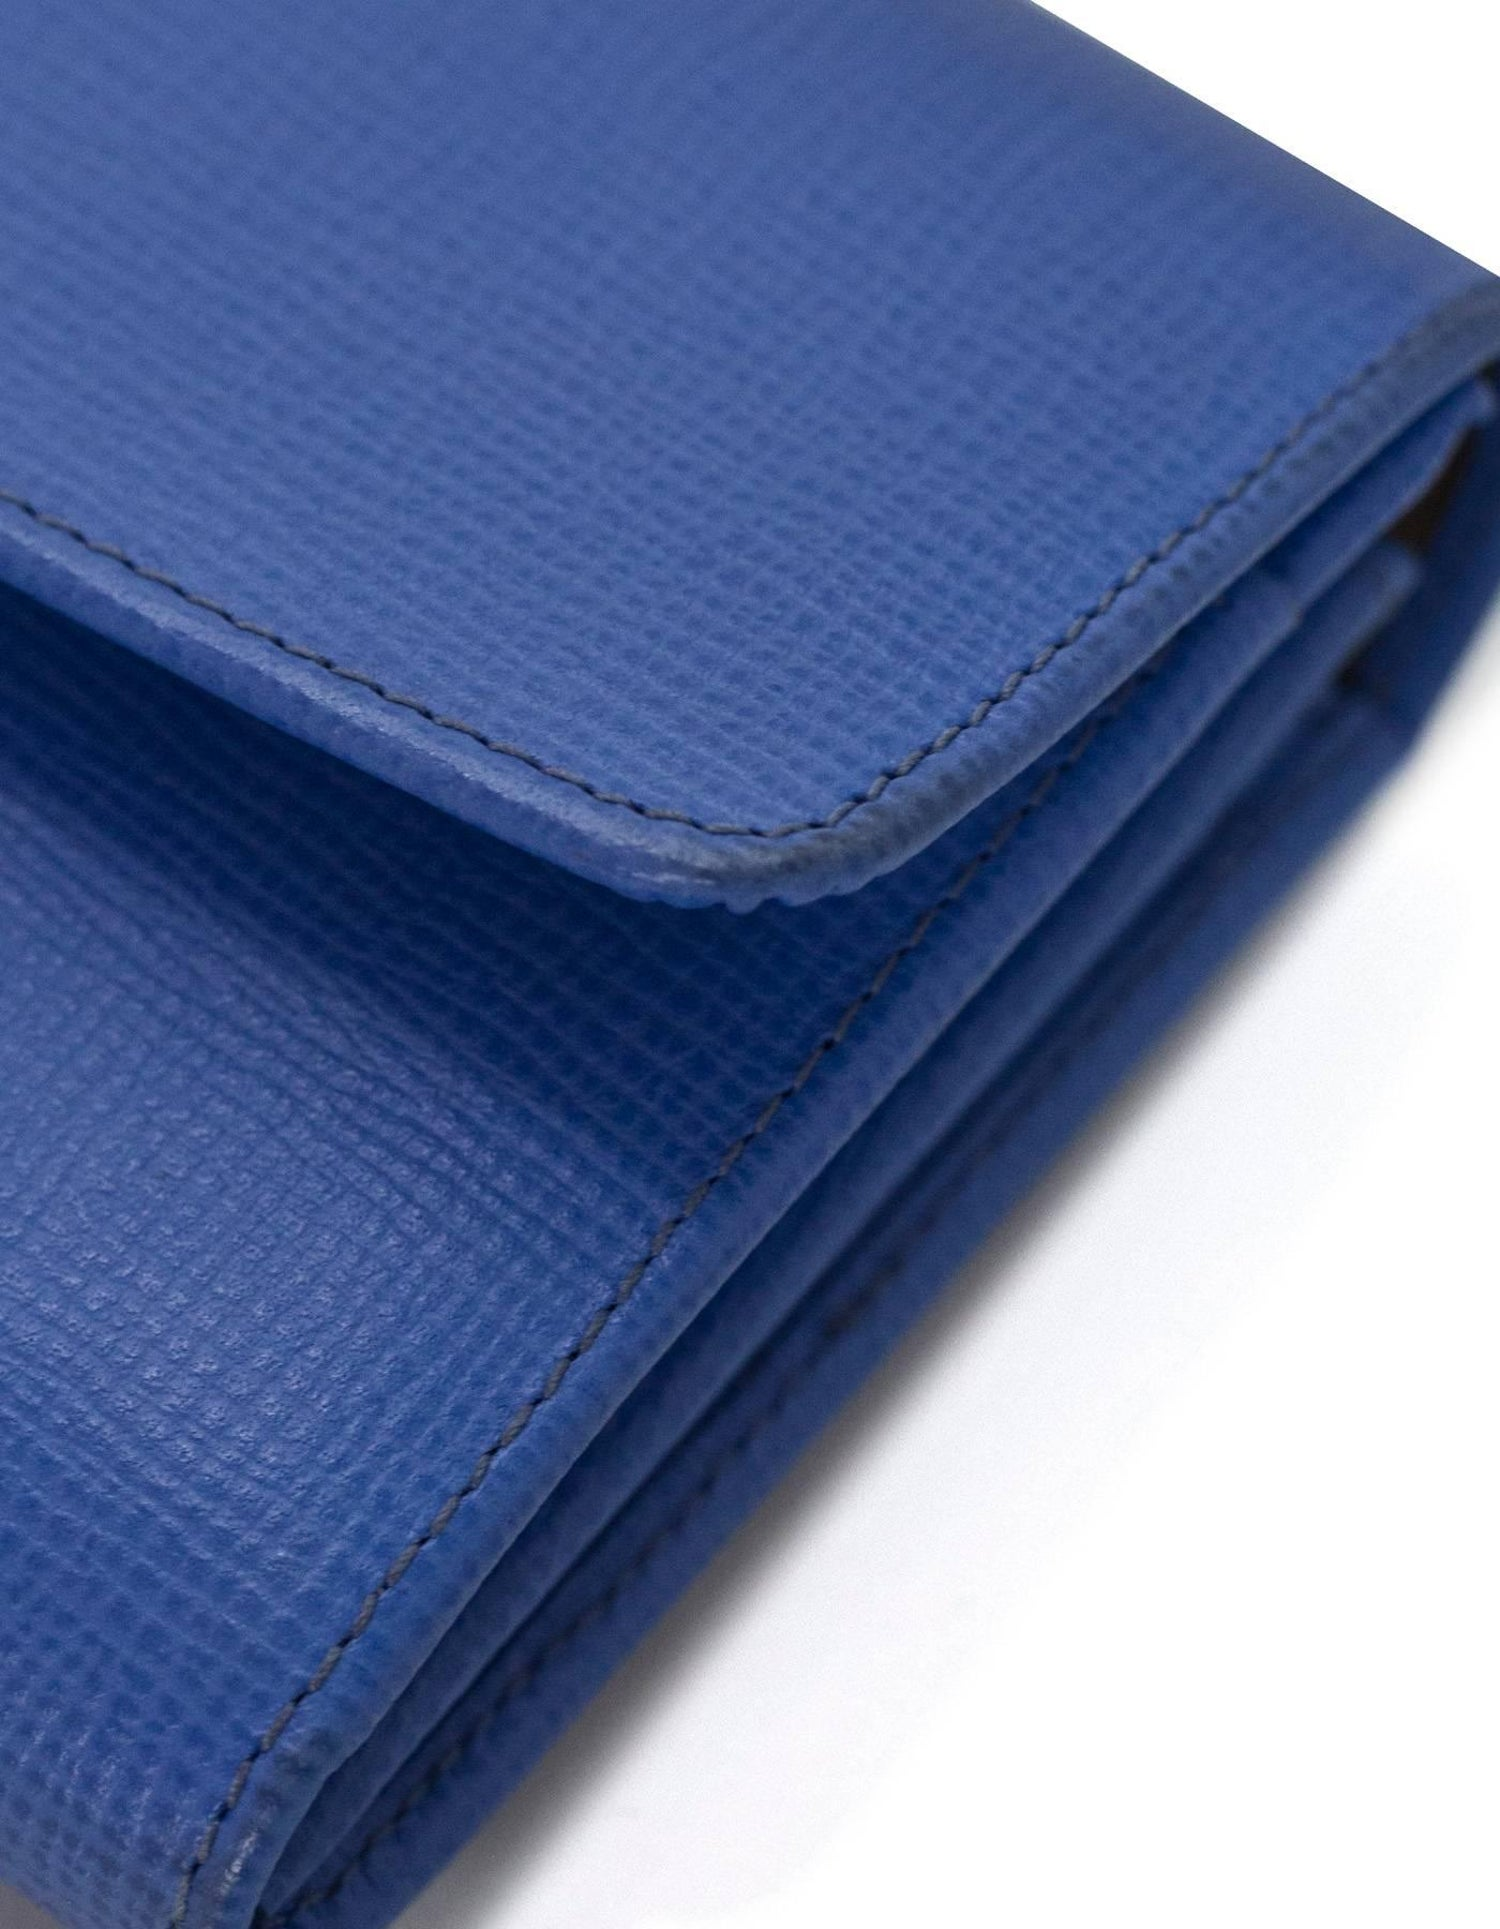 c562aa174bdeb6 Bally Blue Embossed Leather Continental Wallet with Box For Sale at 1stdibs